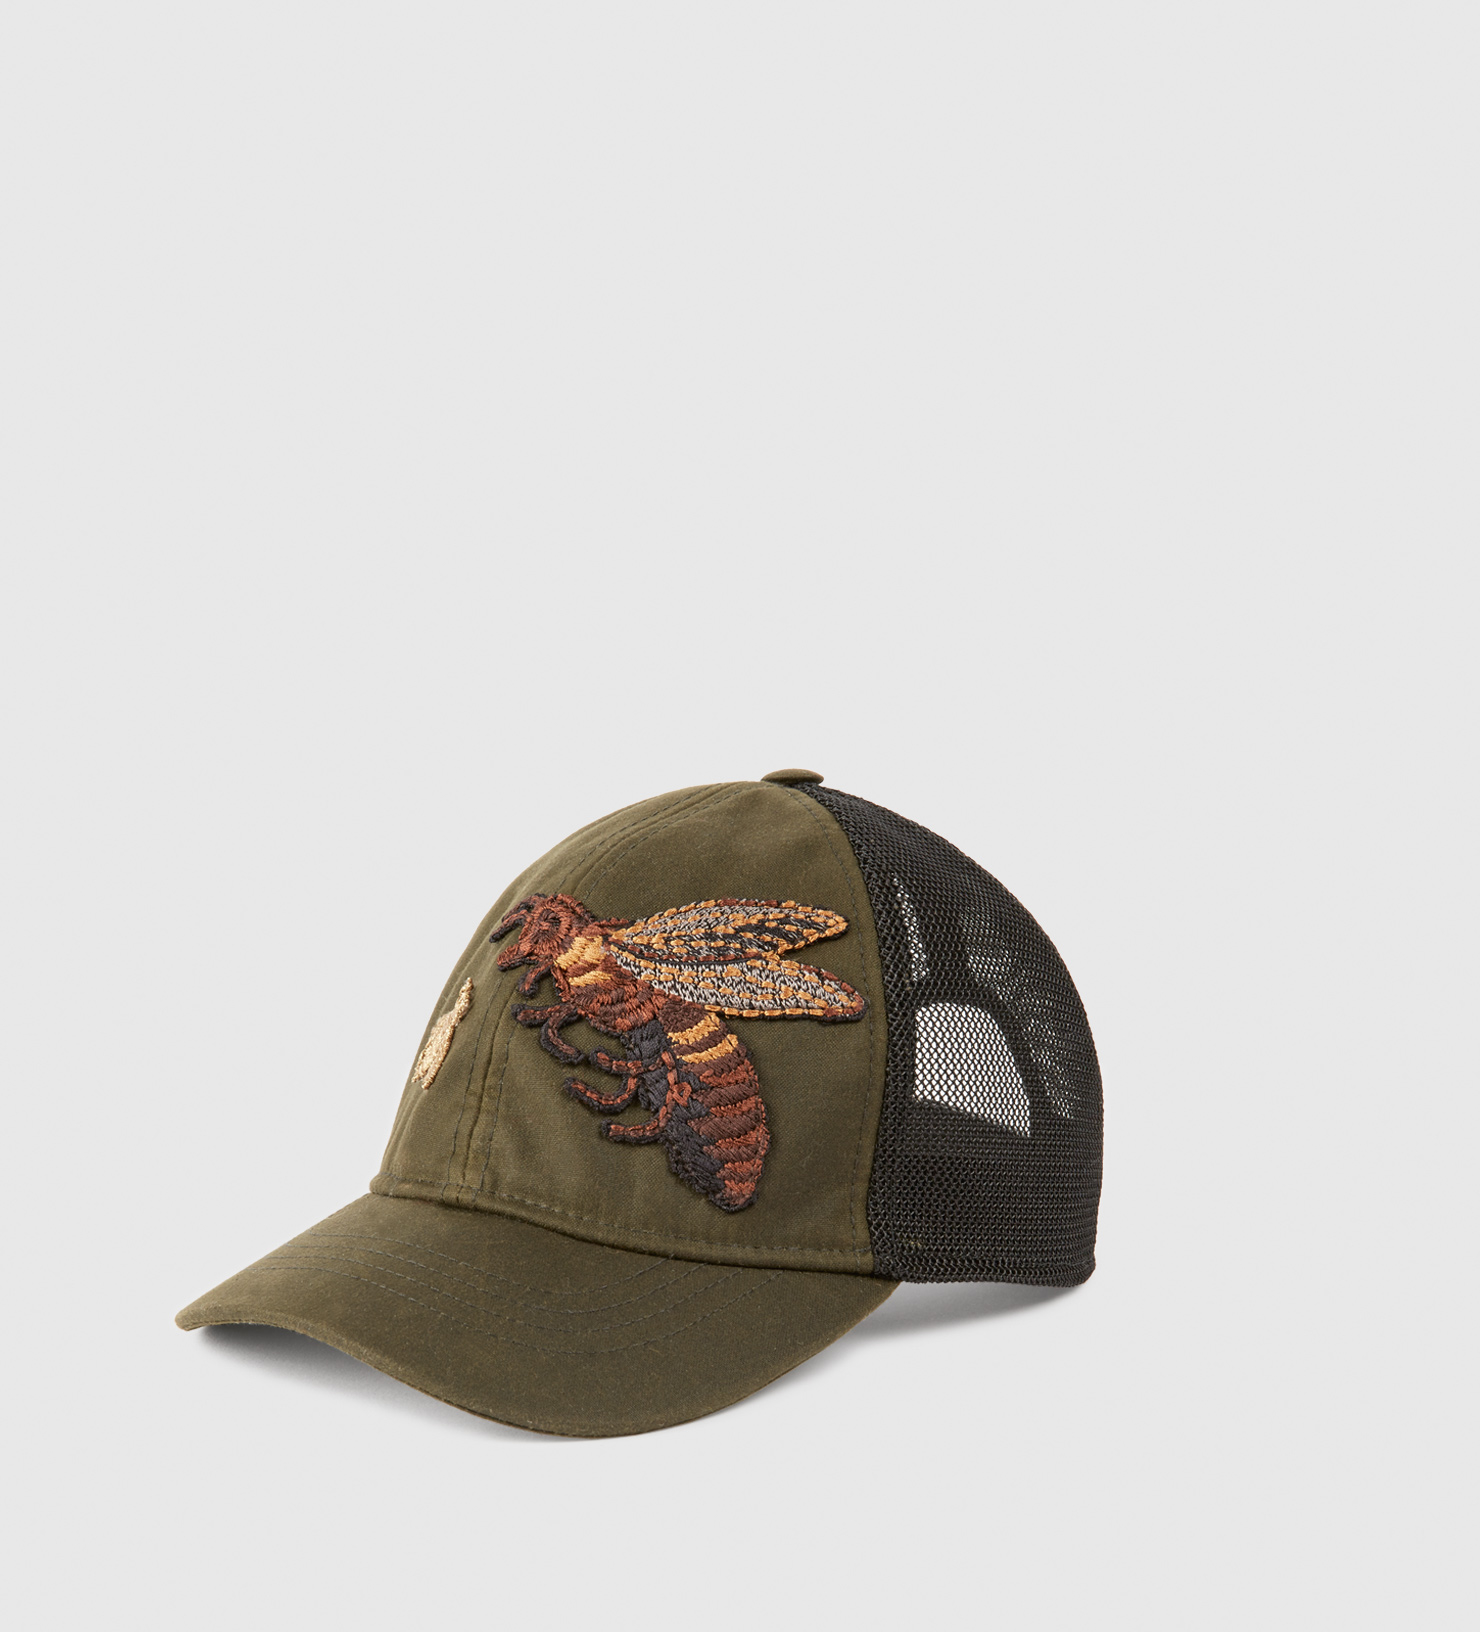 Lyst - Gucci Canvas Hat With Bee Embroidery for Men 98a1b51e9db